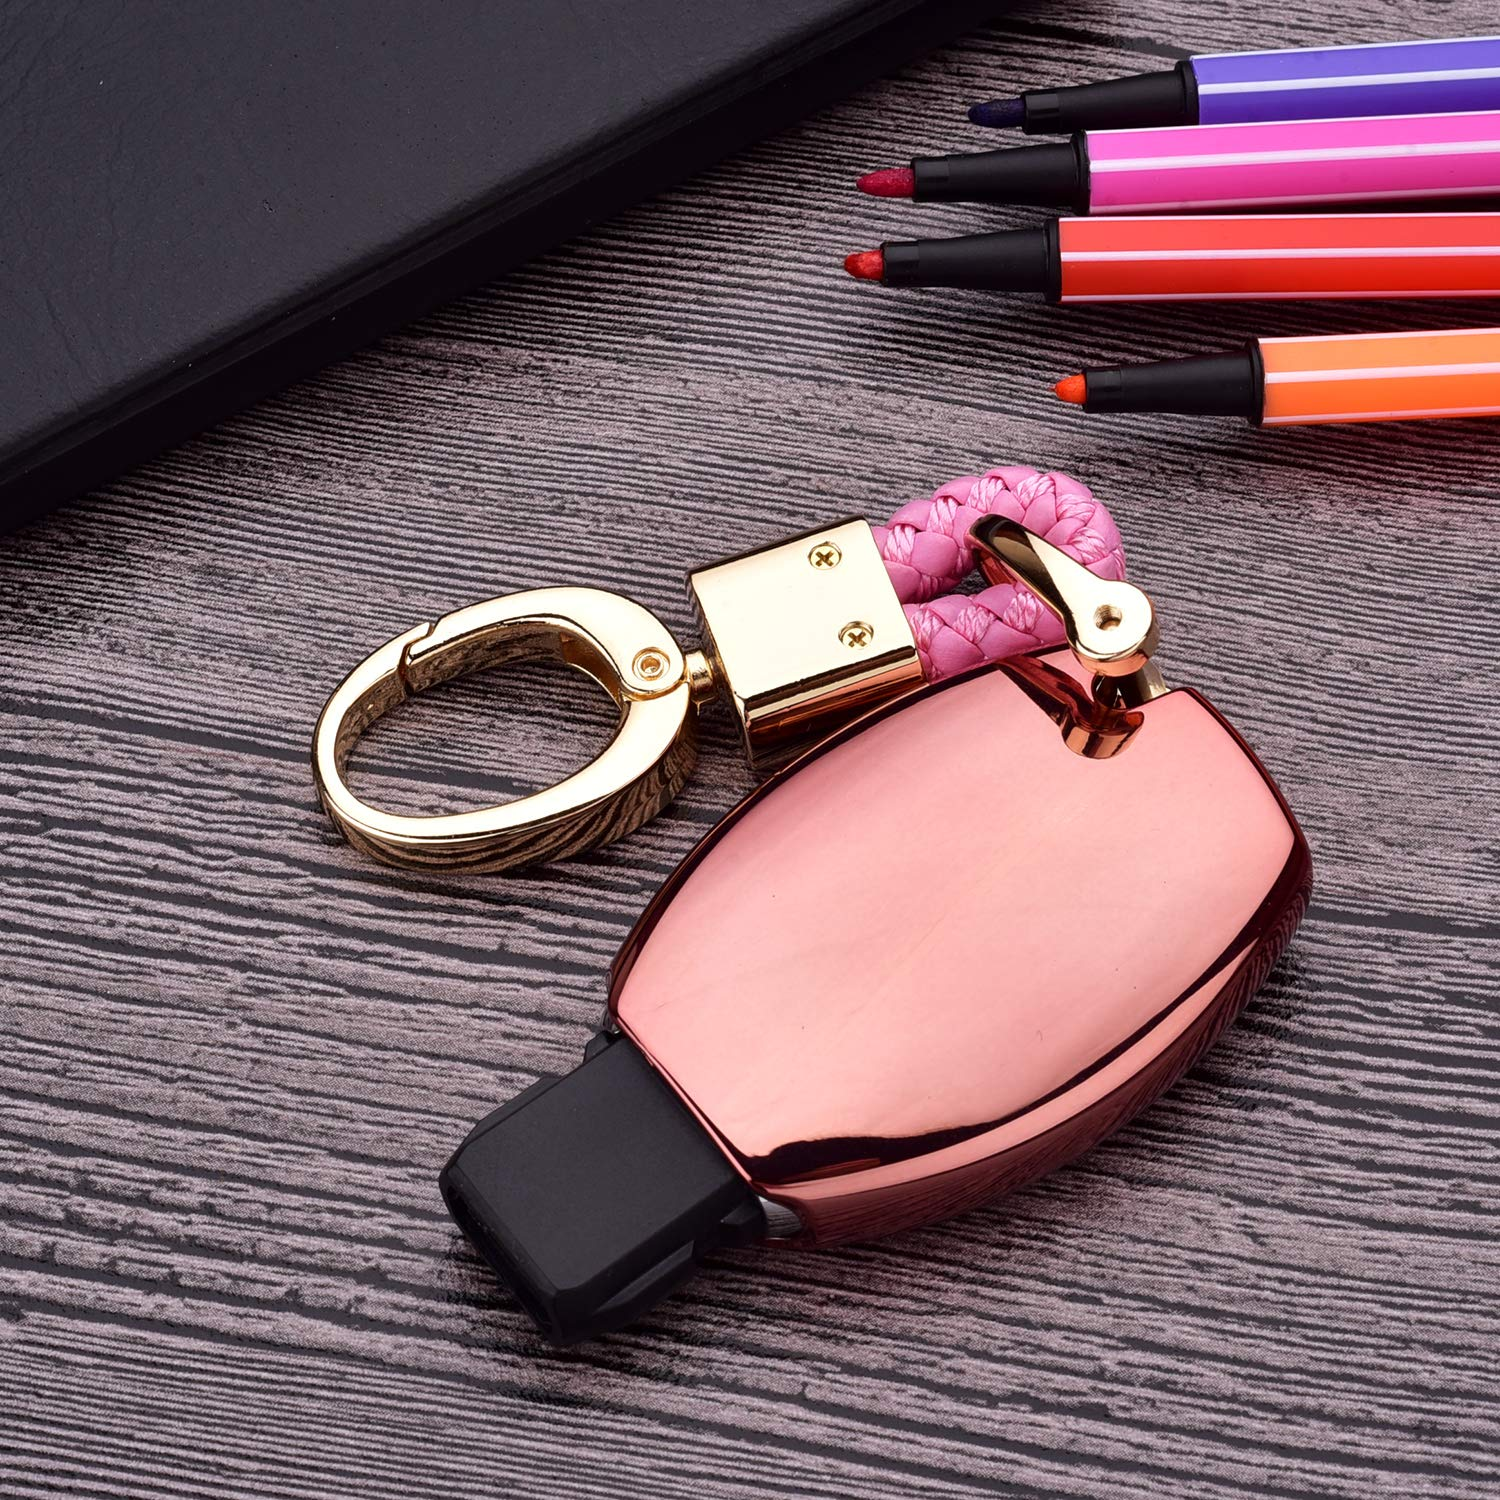 Rose Gold TM Royalfox Luxury 2 3 Buttons Soft Chrome Colored TPU Smart Key Fob case Cover for Mercedes-Benz A C E S Class Series,GLK CLA GLA GLC GLE CLS SLK AMG Series